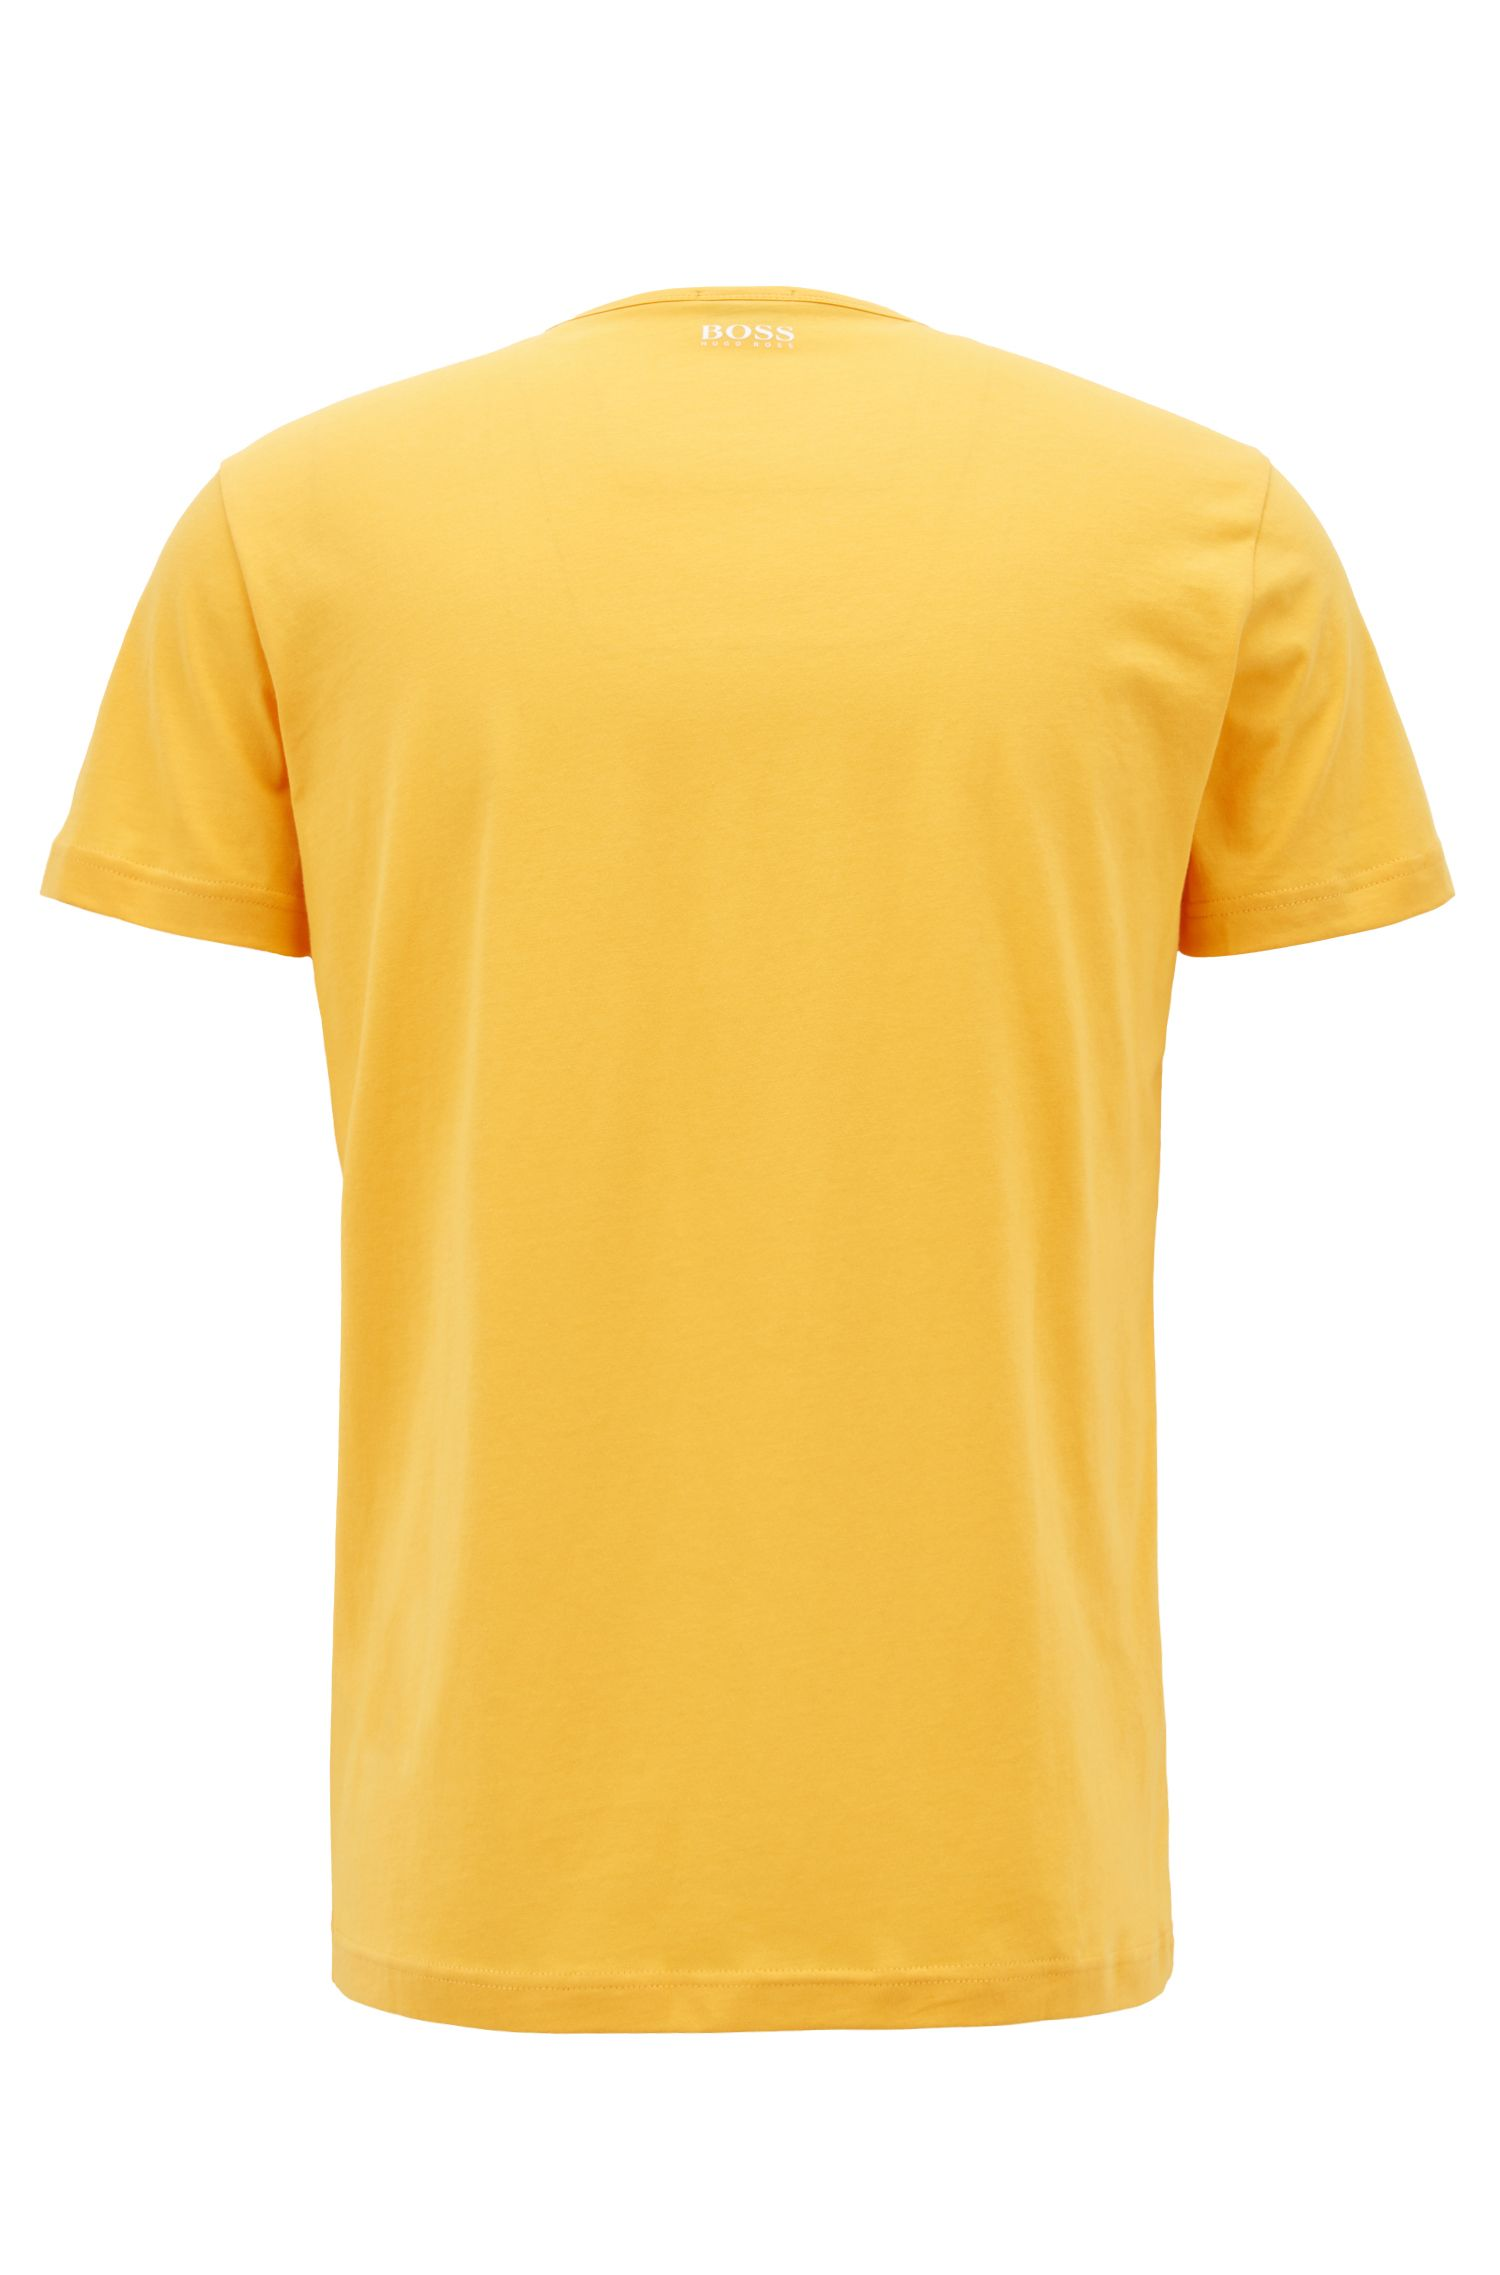 Short-sleeved T-shirt in cotton with printed logo artwork, Light Yellow